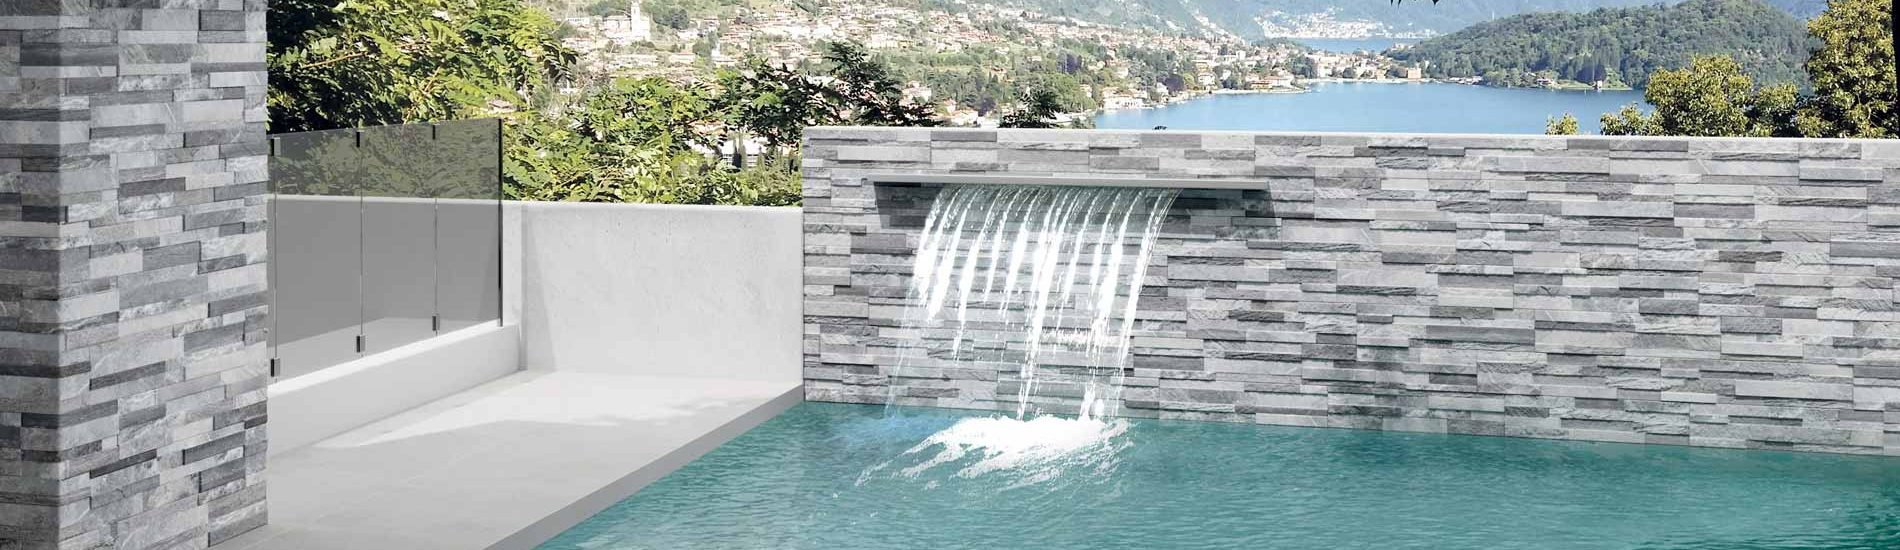 banner-tiffany-italian-stone-look-wall-tile-ceramica-rondine